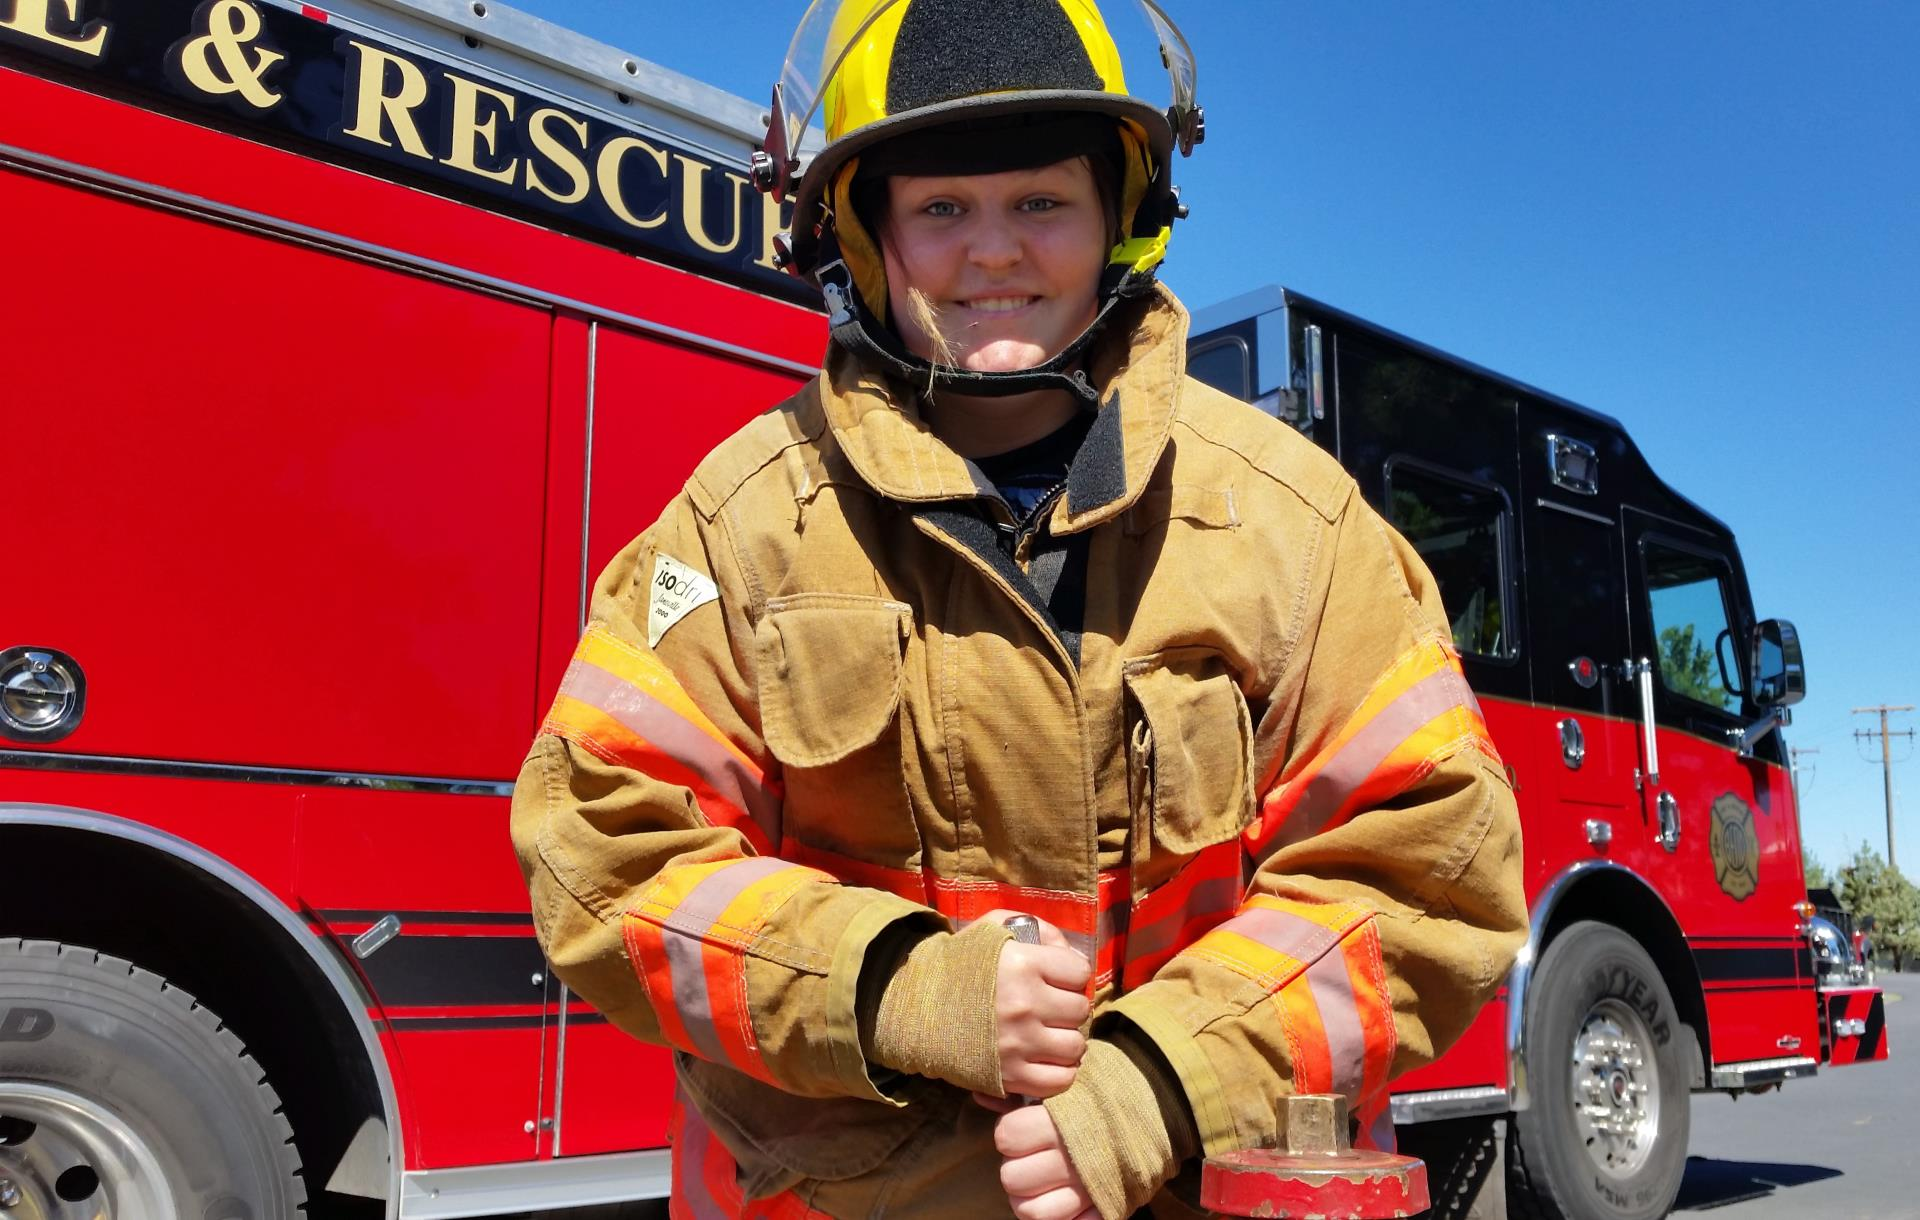 Camp Fire Axe Student standing in front of Fire Engine